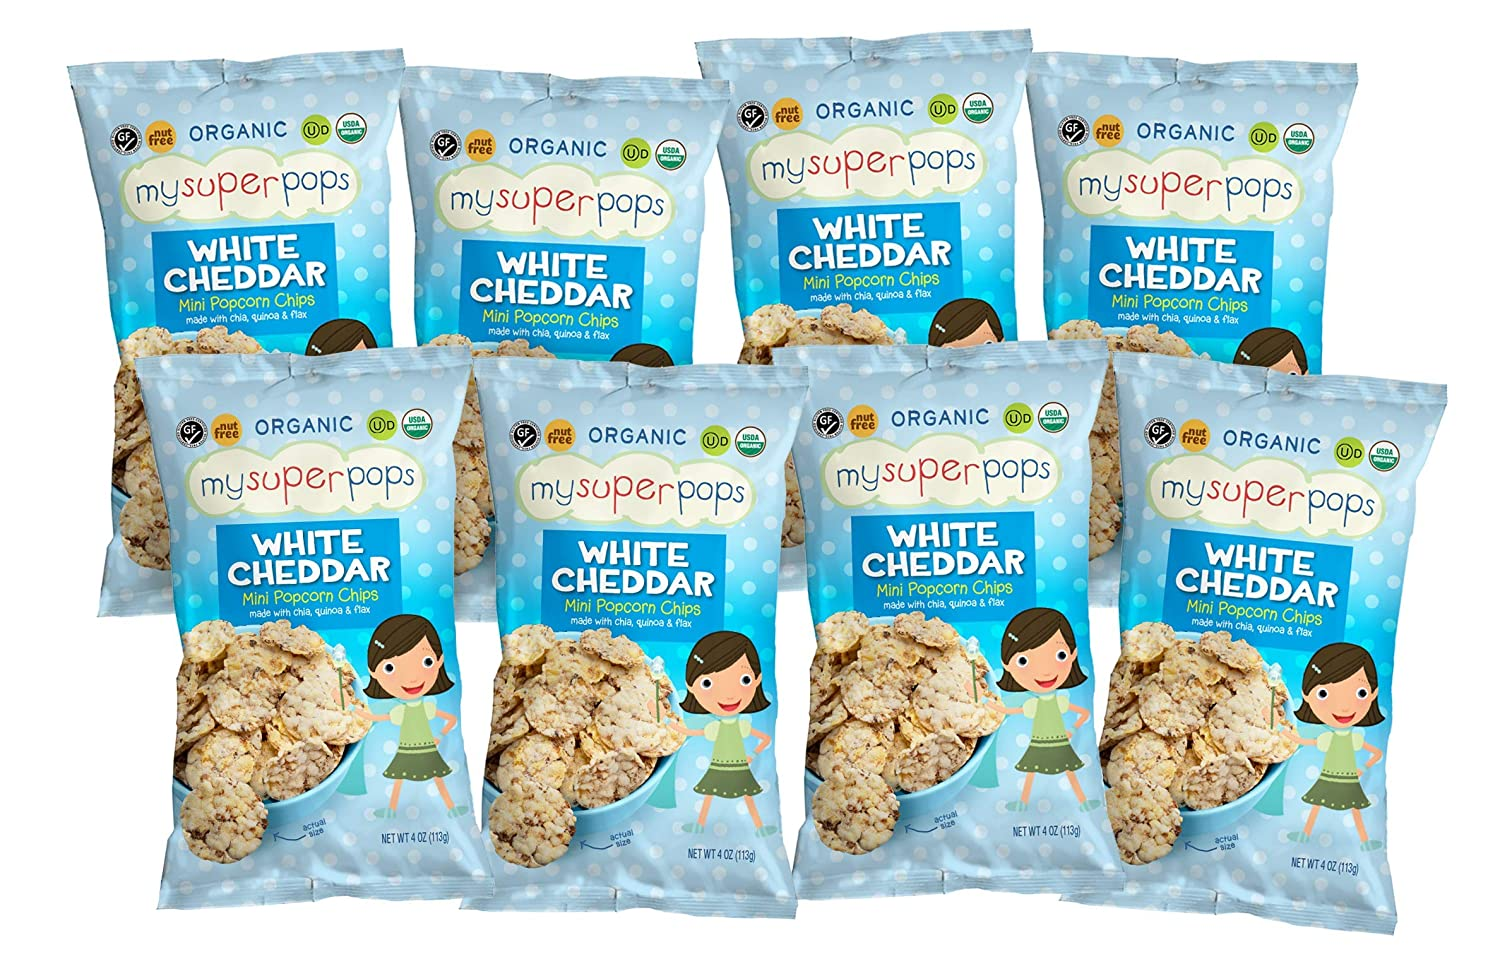 Max 49% OFF MySuperPops Recommended Mini Popcorn Chips Organic Free Wh Kosher Gluten